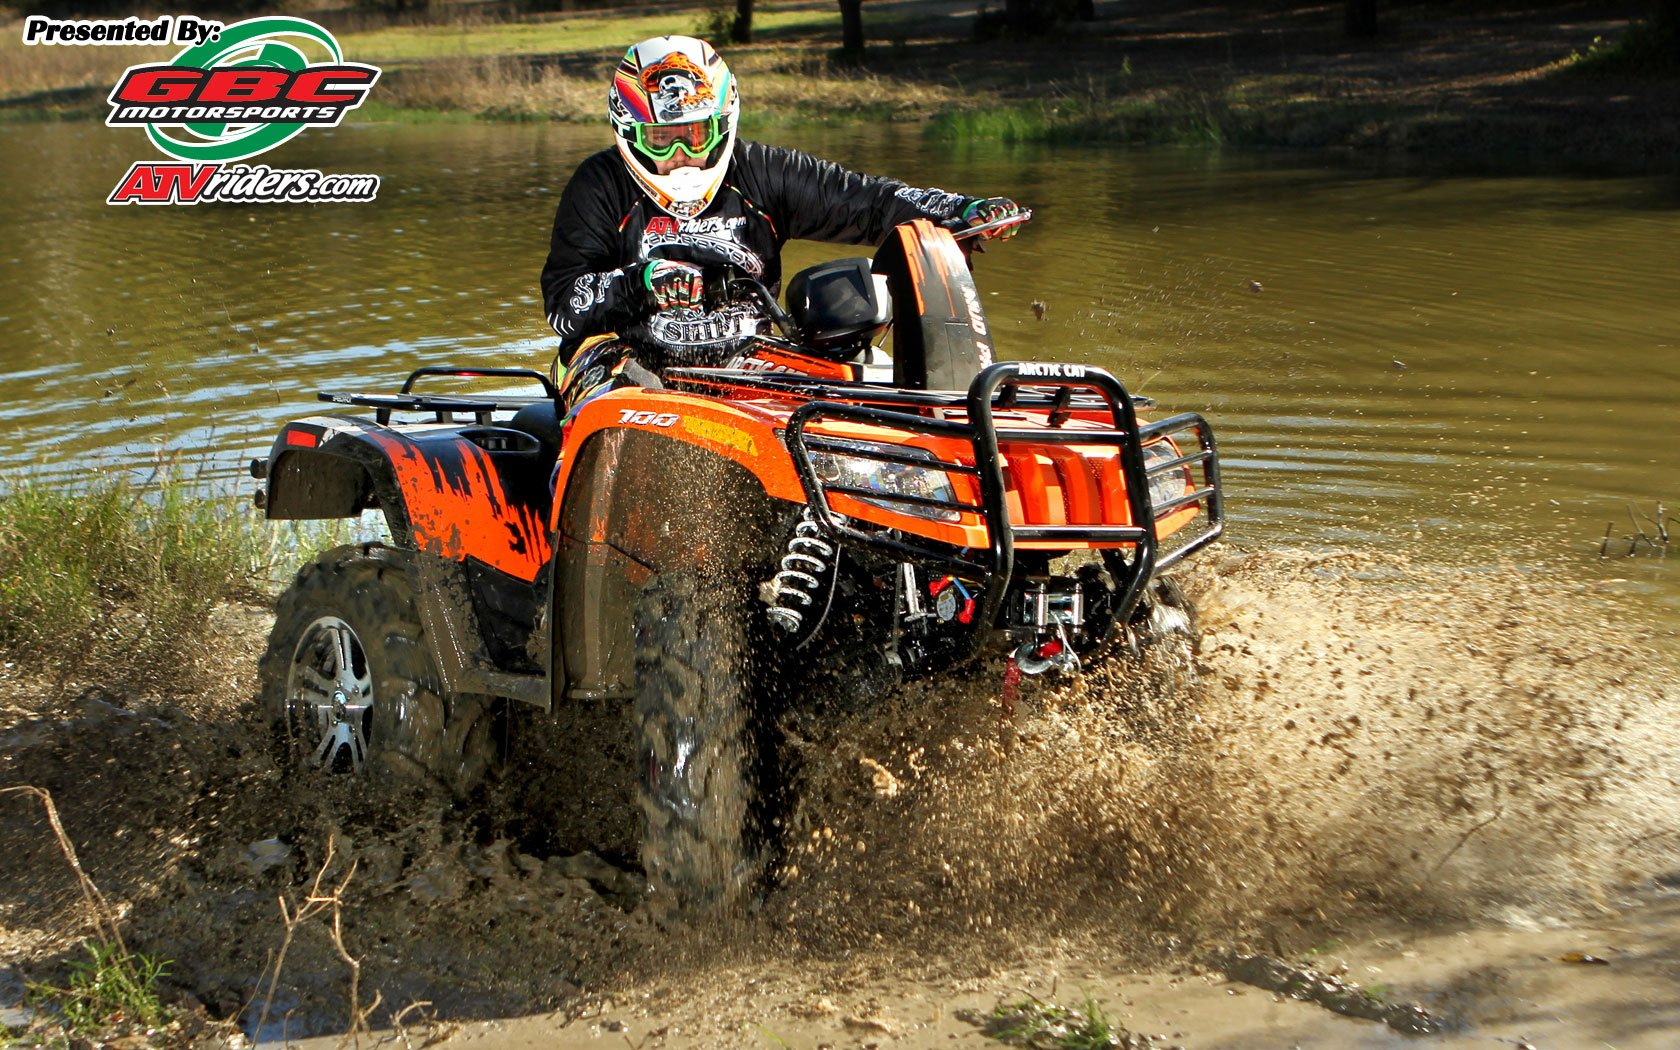 Arctic Cat Mud Pro 1000 4x4 Utility ATV Roost   Wednesday Wallpapers 1680x1050